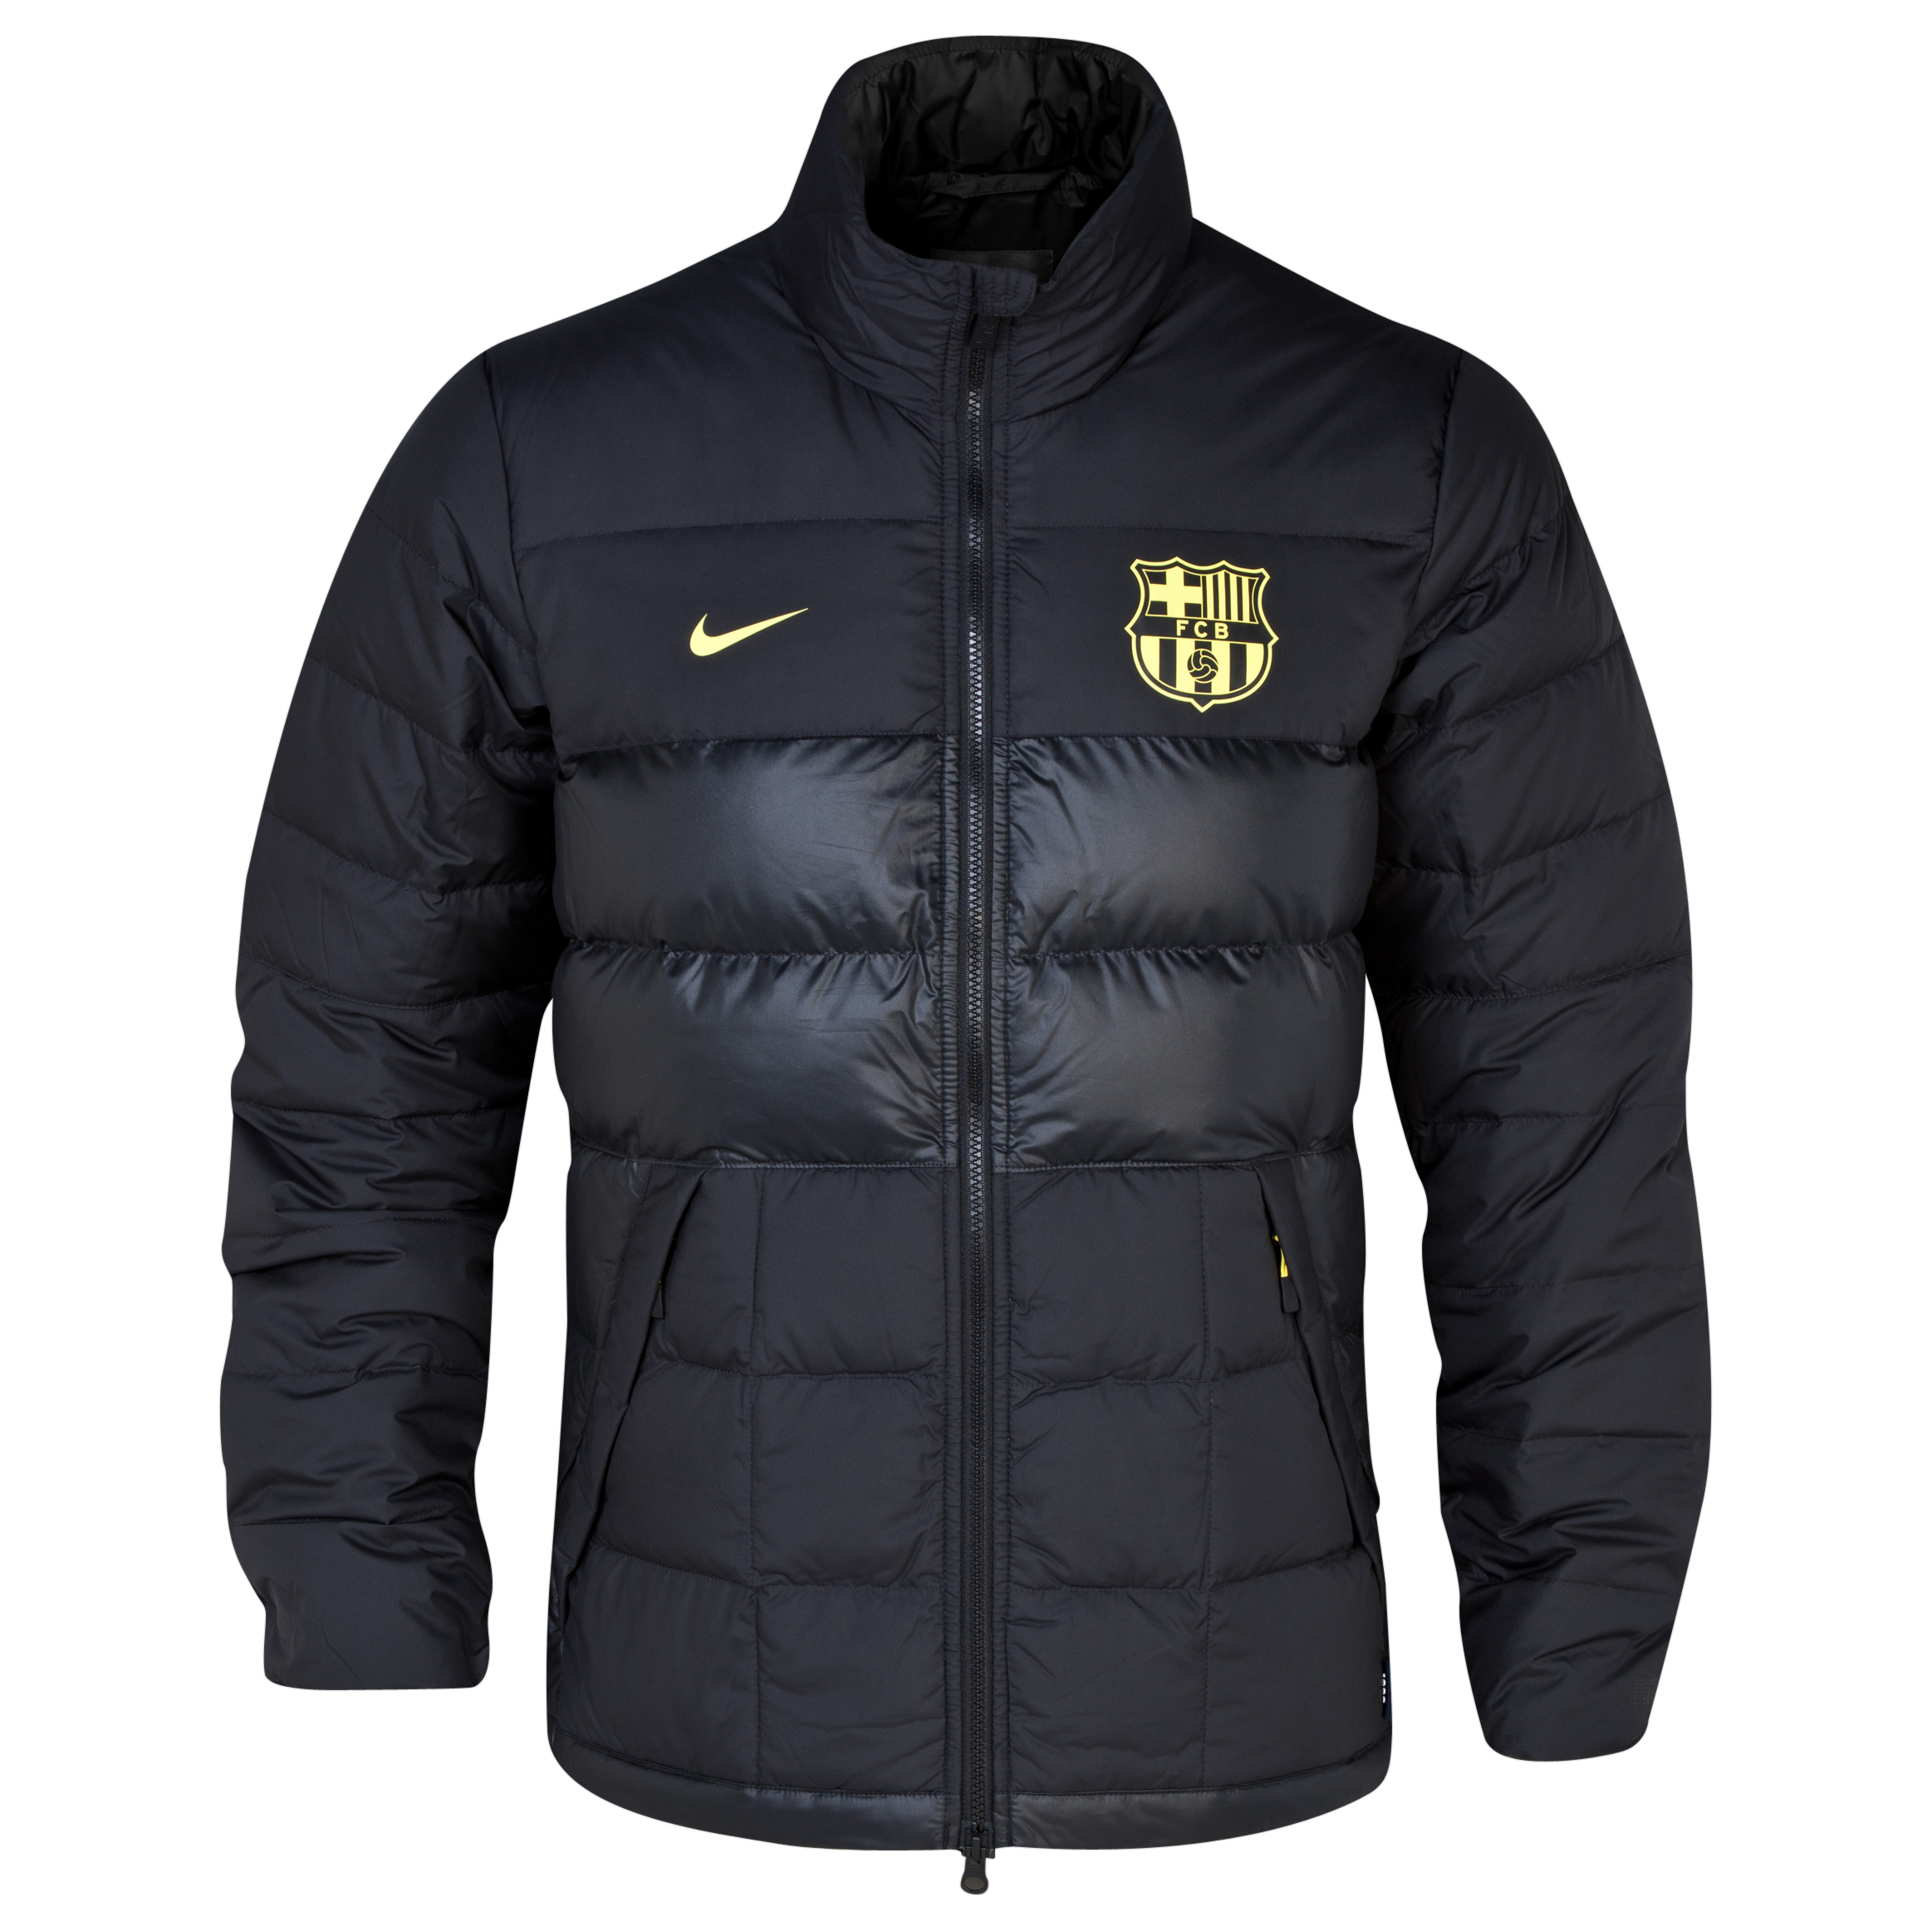 Barcelona Alliance 550 Jacket - Black/Vibrant Yellow Black